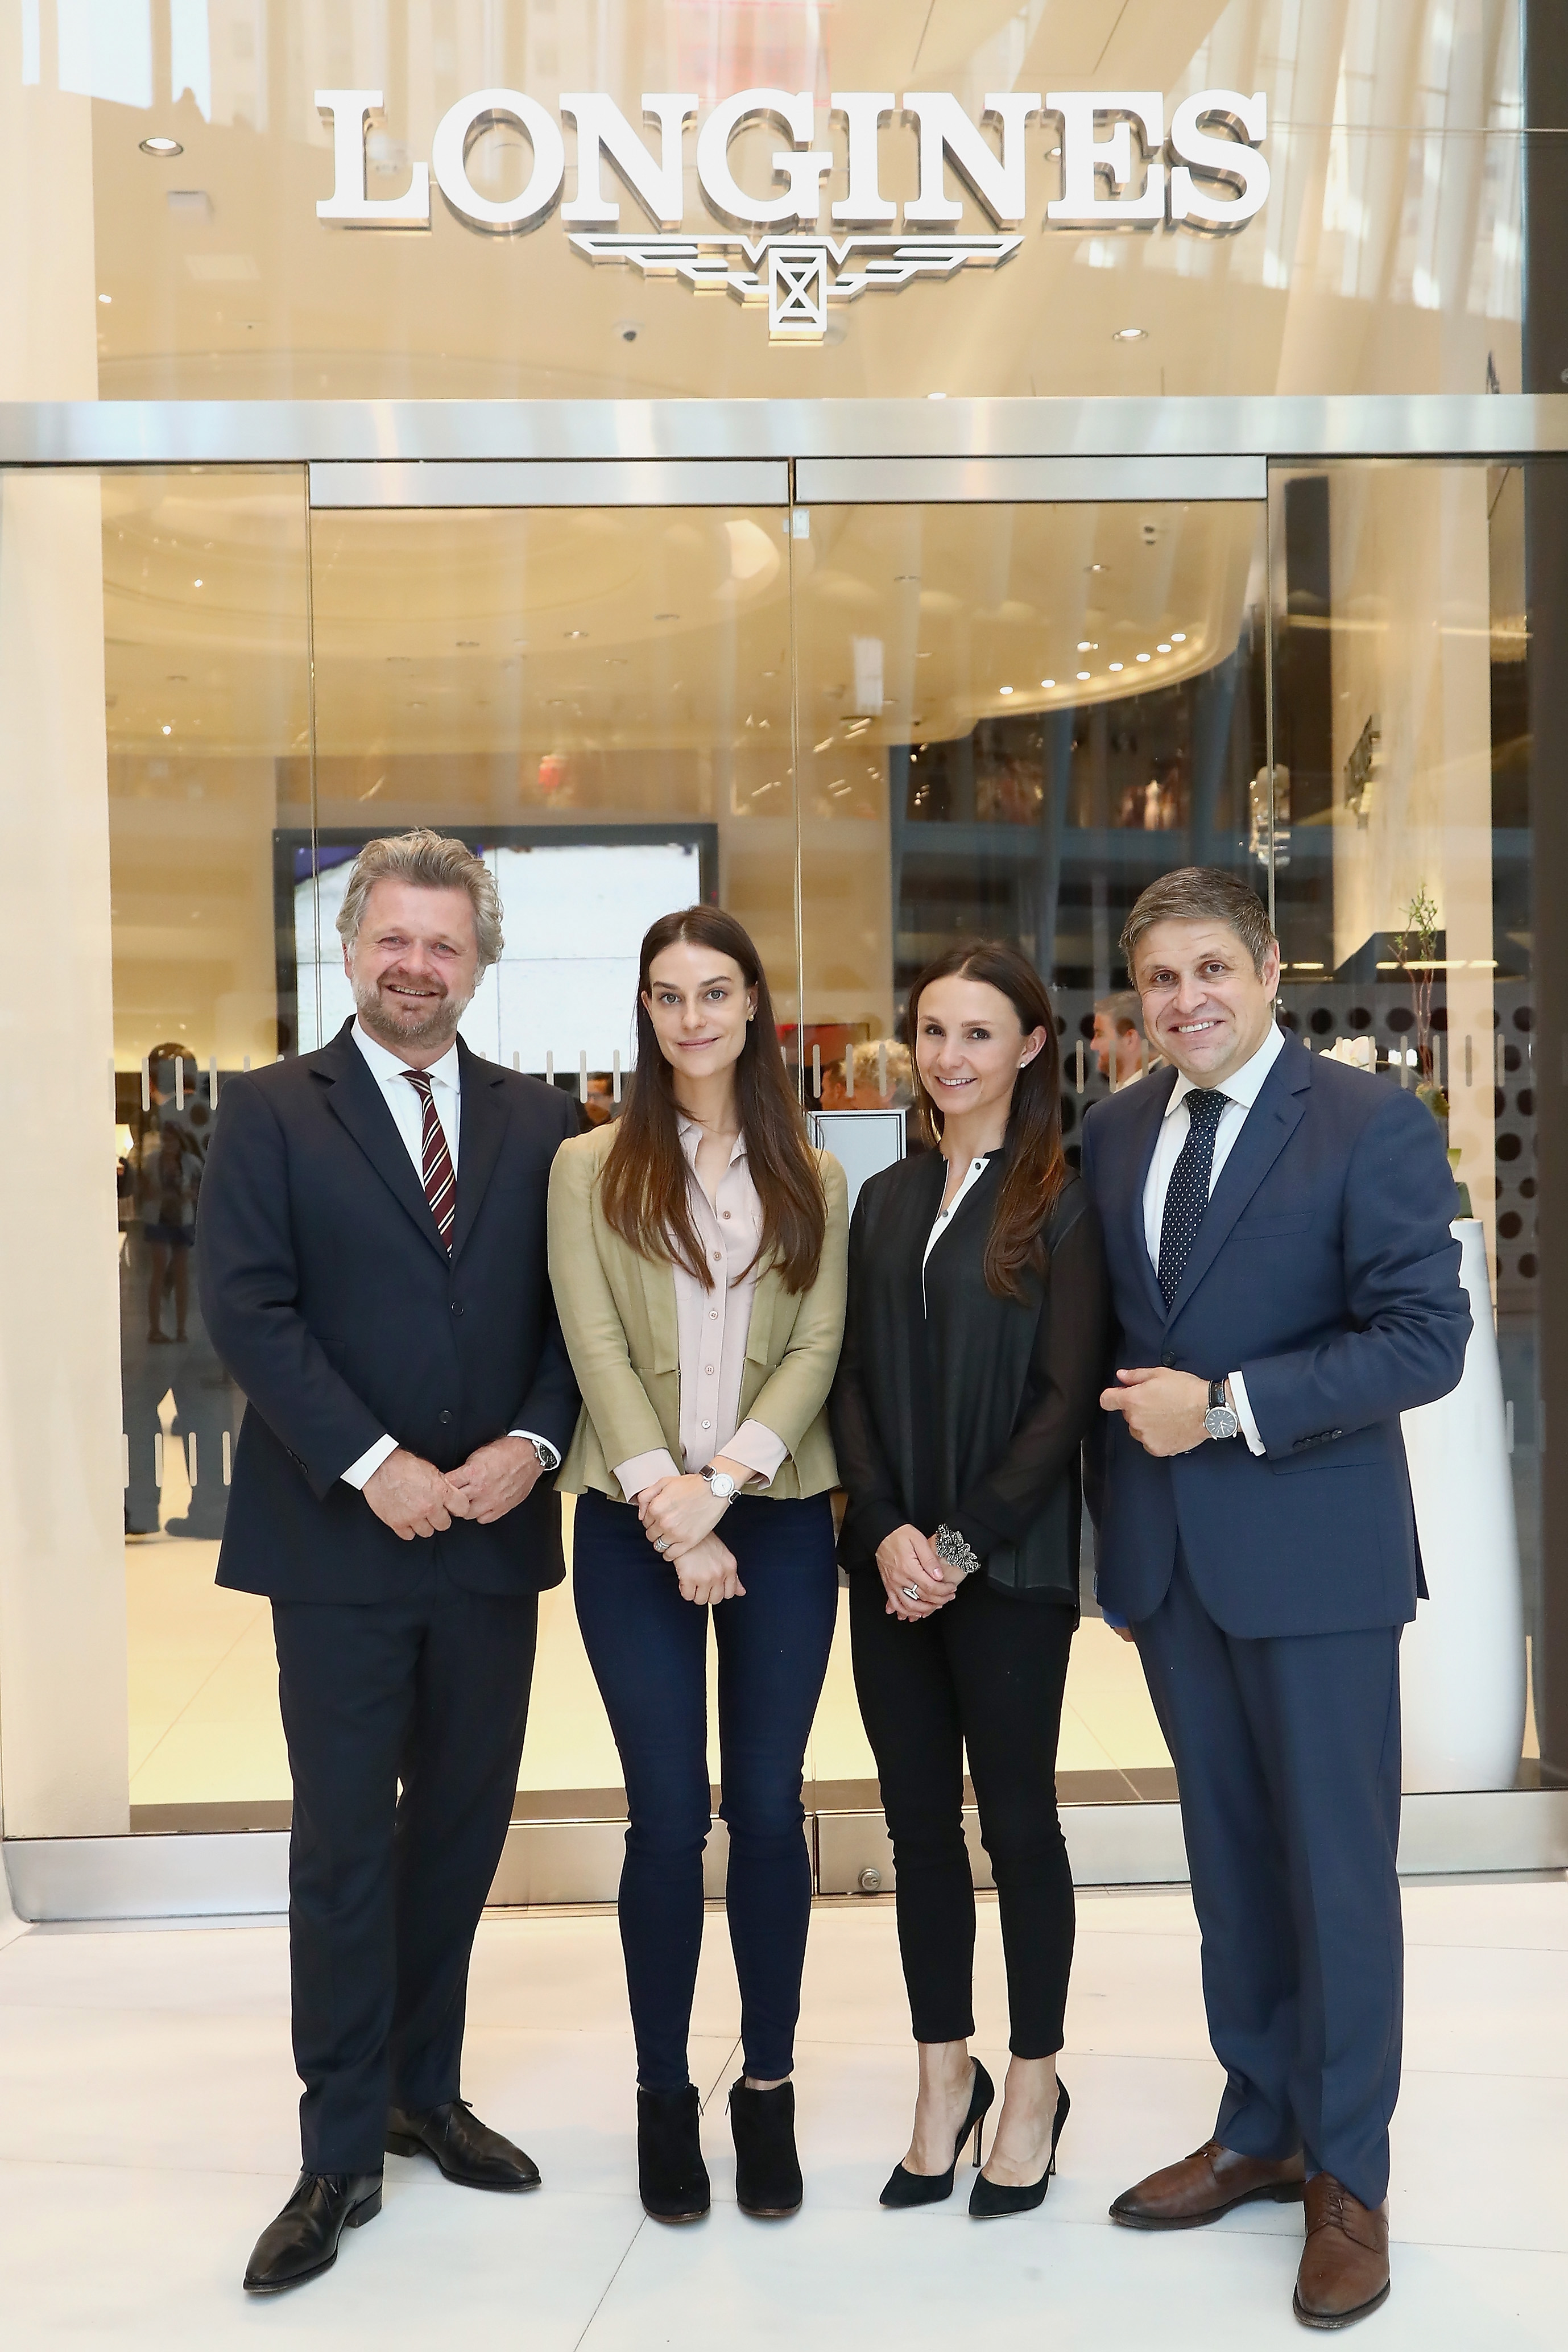 NEW YORK, NY - MAY 17: EEM Founder & CEO Christophe Ameeuw, Ariana Rockefeller, Georgina Bloomberg and Vice President of Longines Mr. Juan-Carlos Capelli attend the Longines Masters launch party celebrating Series' epic move to New York at Longines Boutique on May 17, 2017 in New York City. (Photo by Astrid Stawiarz/Getty Images for Longines)